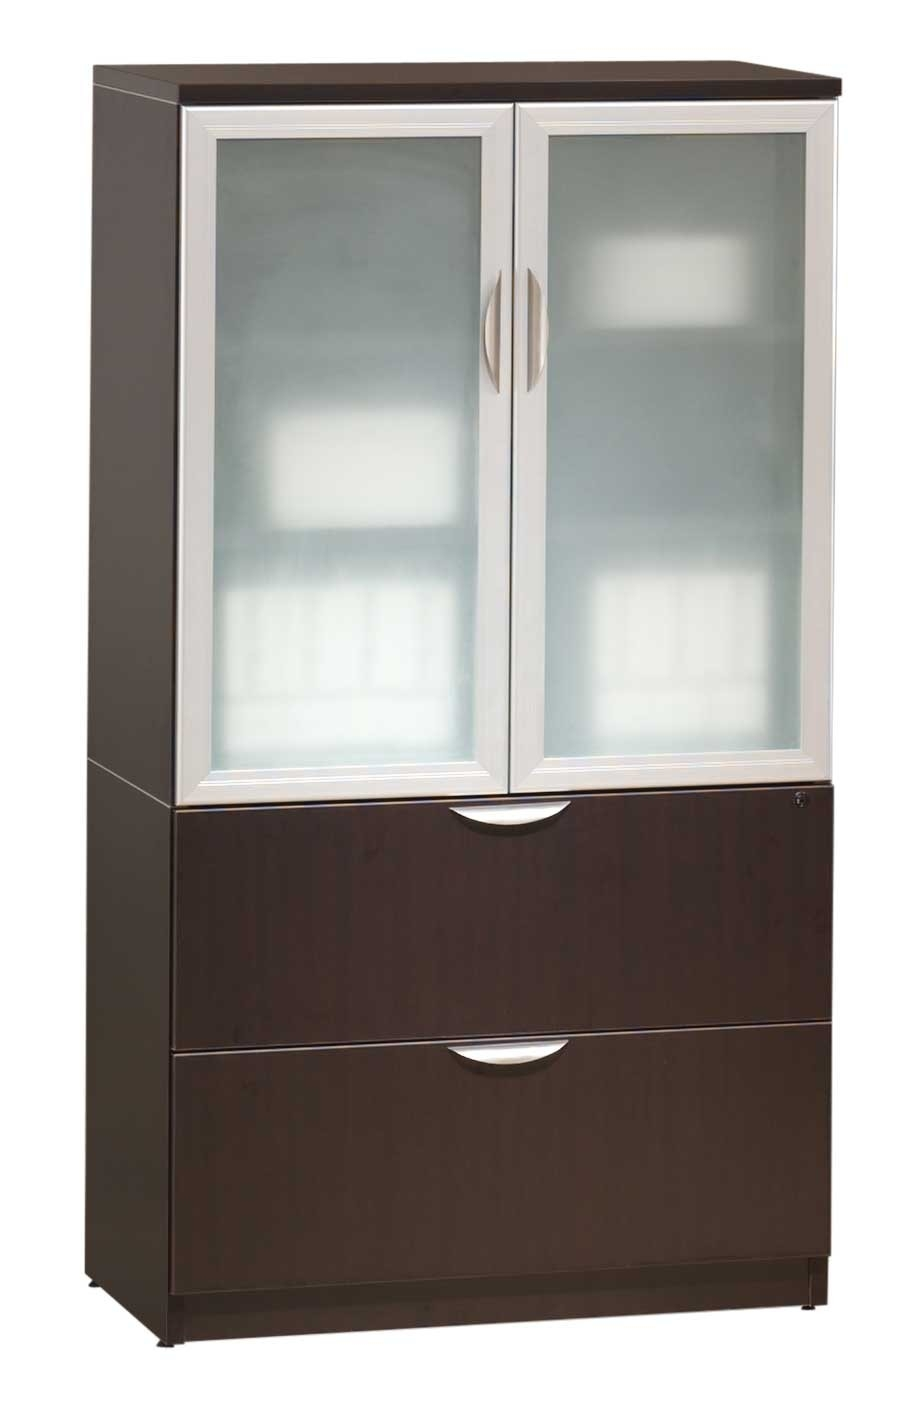 Storage Cabinets With Frosted Glass Doors